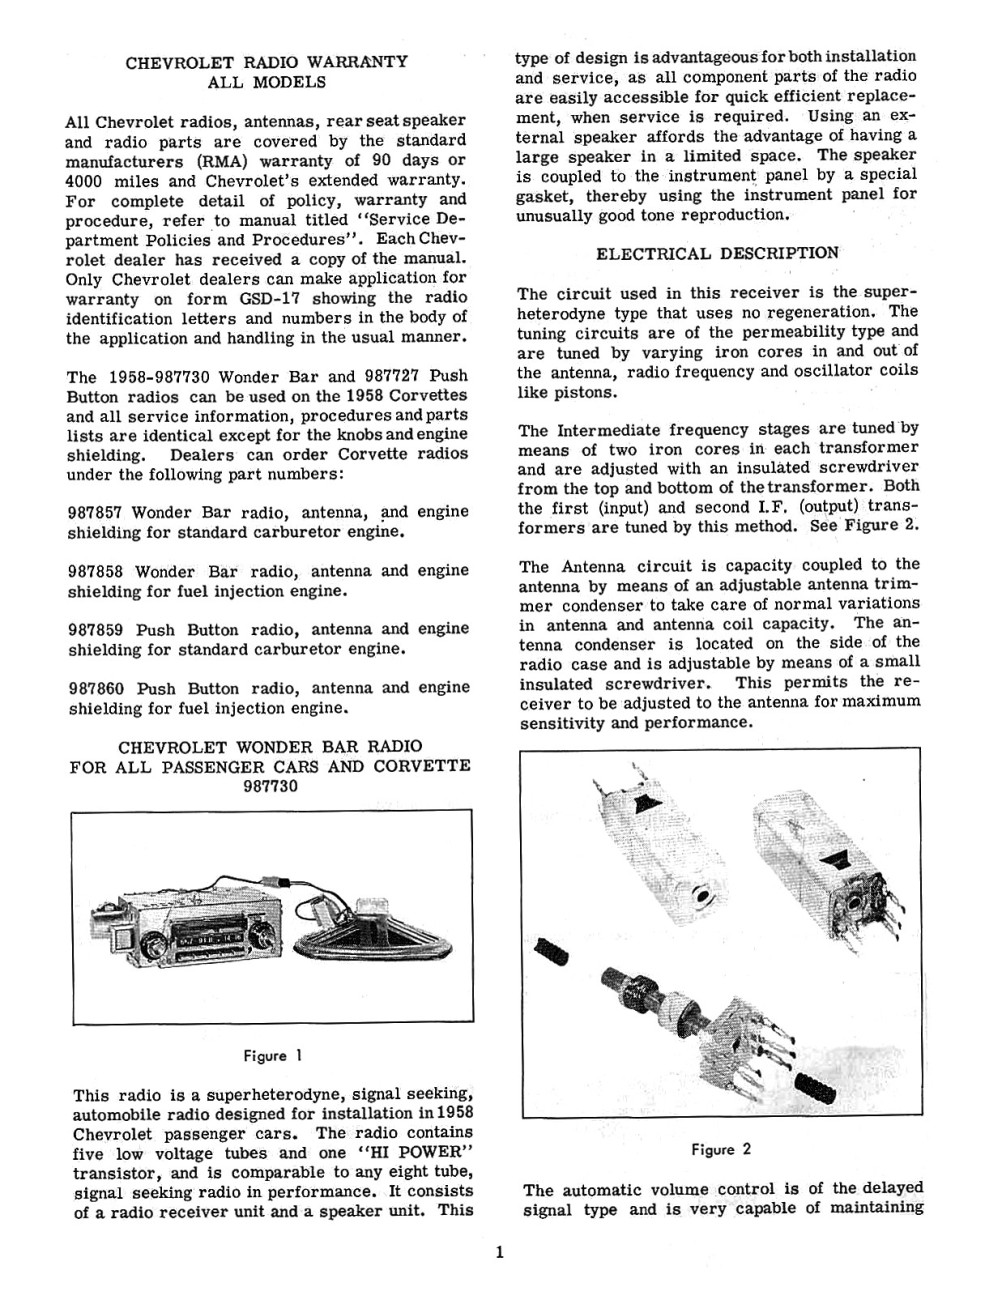 Snap Old Chevrolet Radio Information Online Chevy Manuals Autronic Eye Circuit Diagram For The 1960 Passenger Car 1958 And Autotronic Service Shop Manual